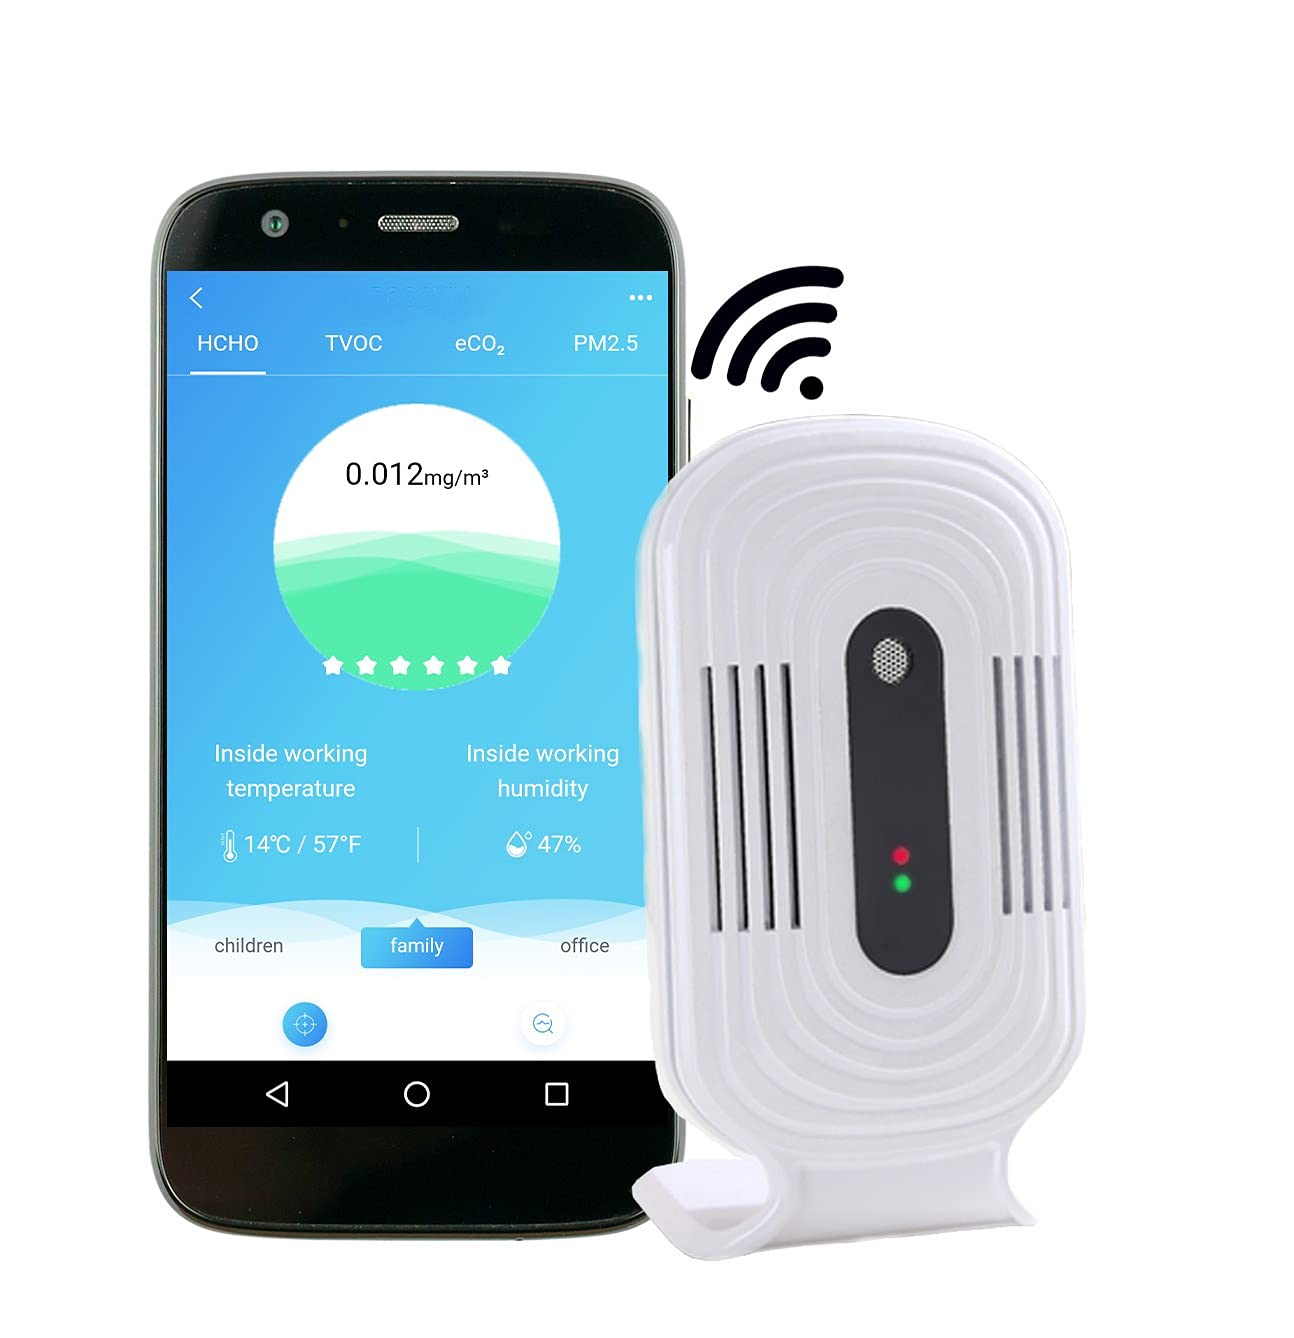 RocoViv Air Quality Monitor - CO2, Formaldehyde HCHO, TVOC, PM 2.5, Temperature and Humidity Sensor for Home or Office, Portable Smart Real Time WiFi Sensor, with Free APP.